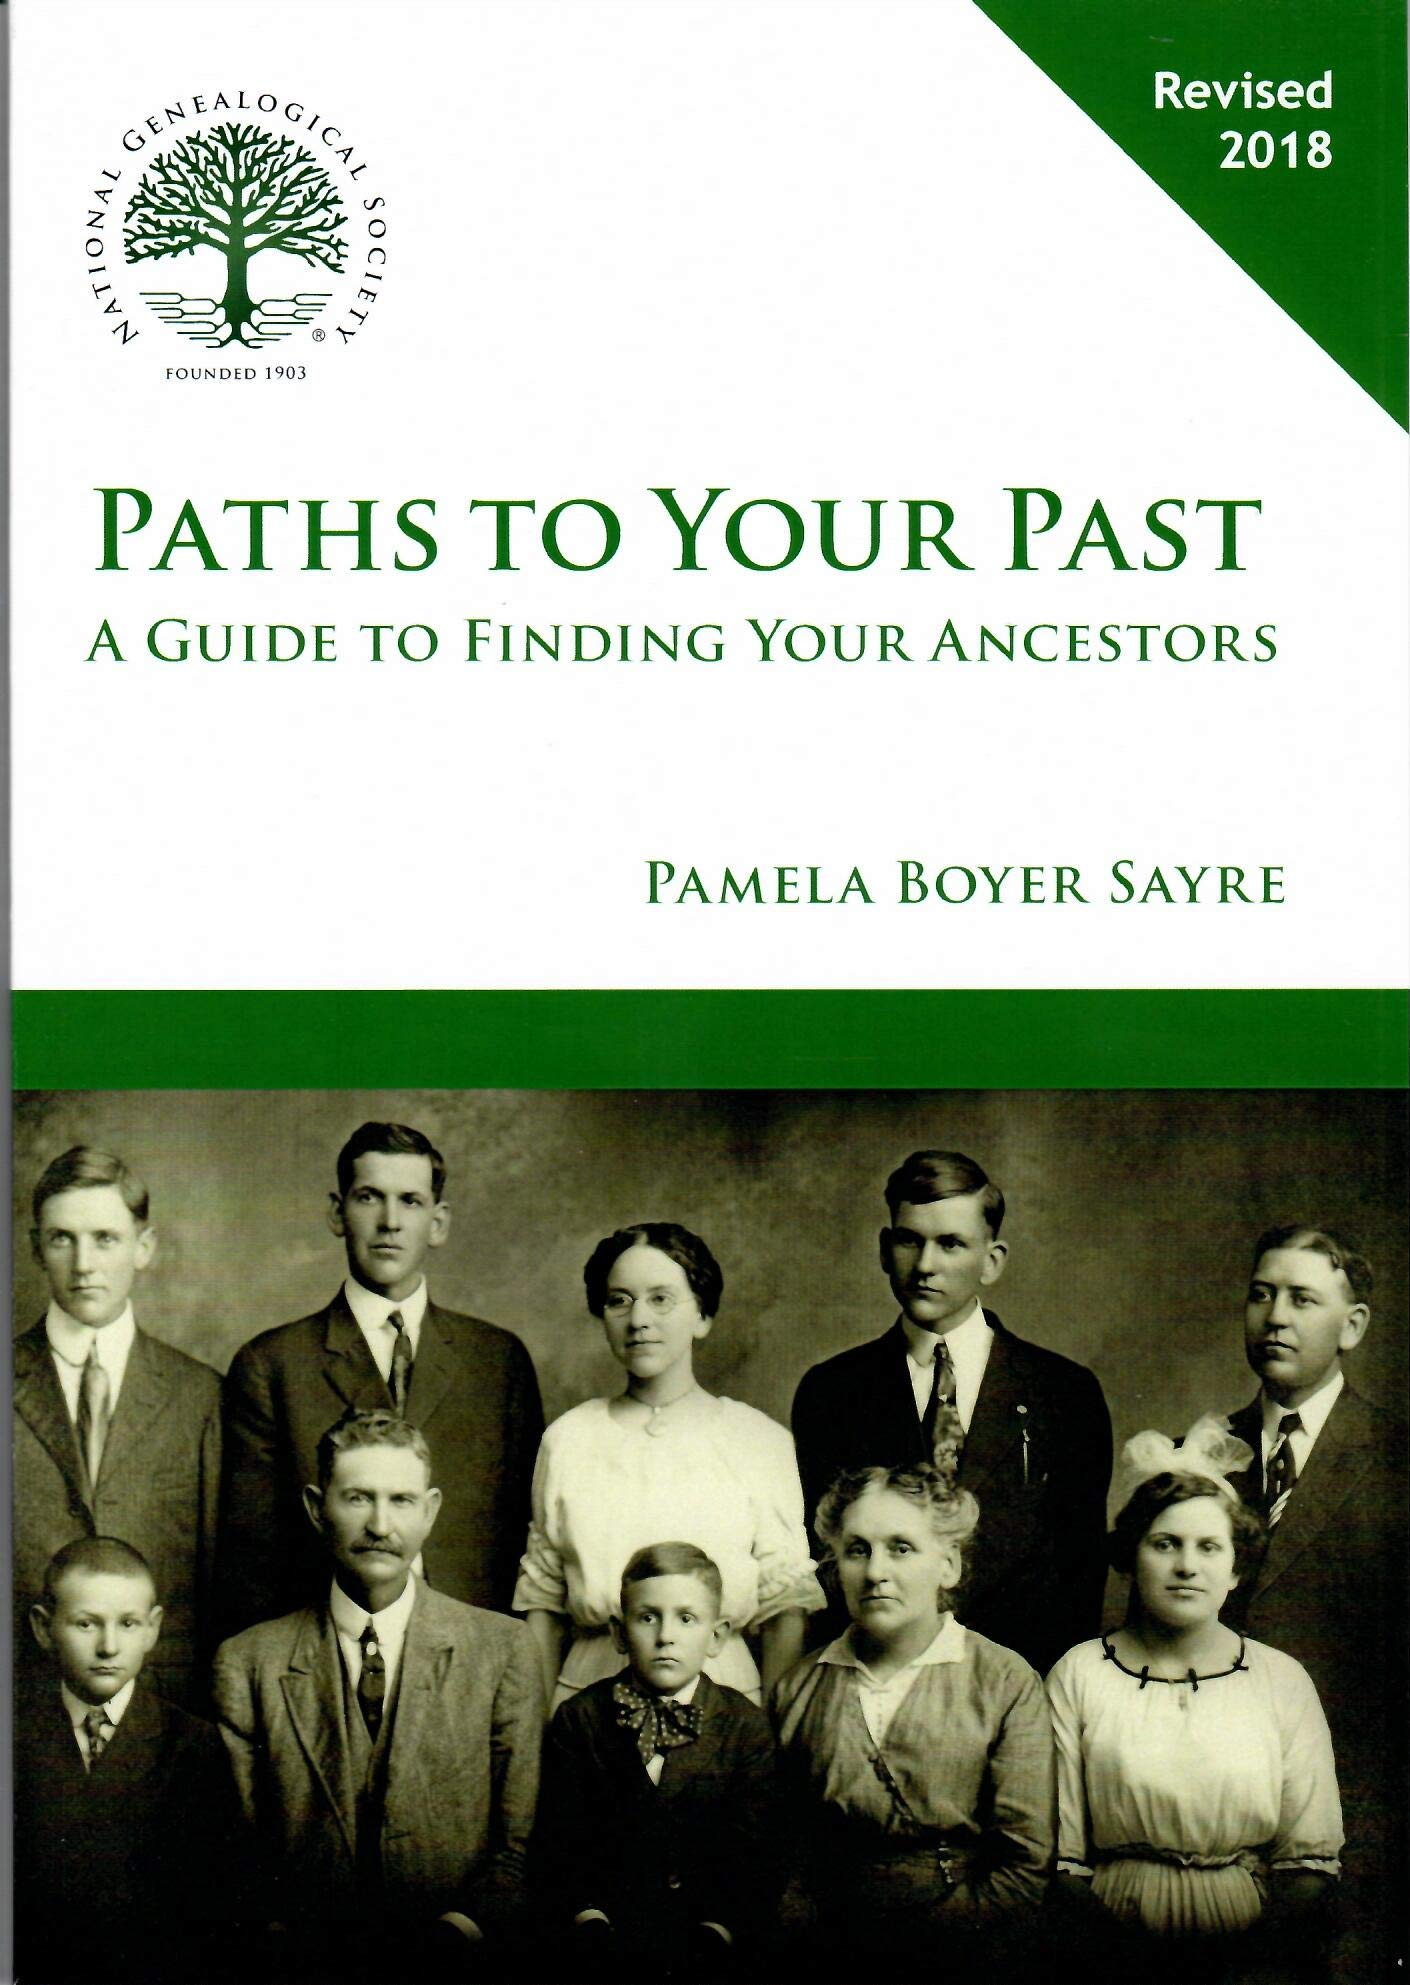 Paths to your past : a guide to finding your ancestors image cover